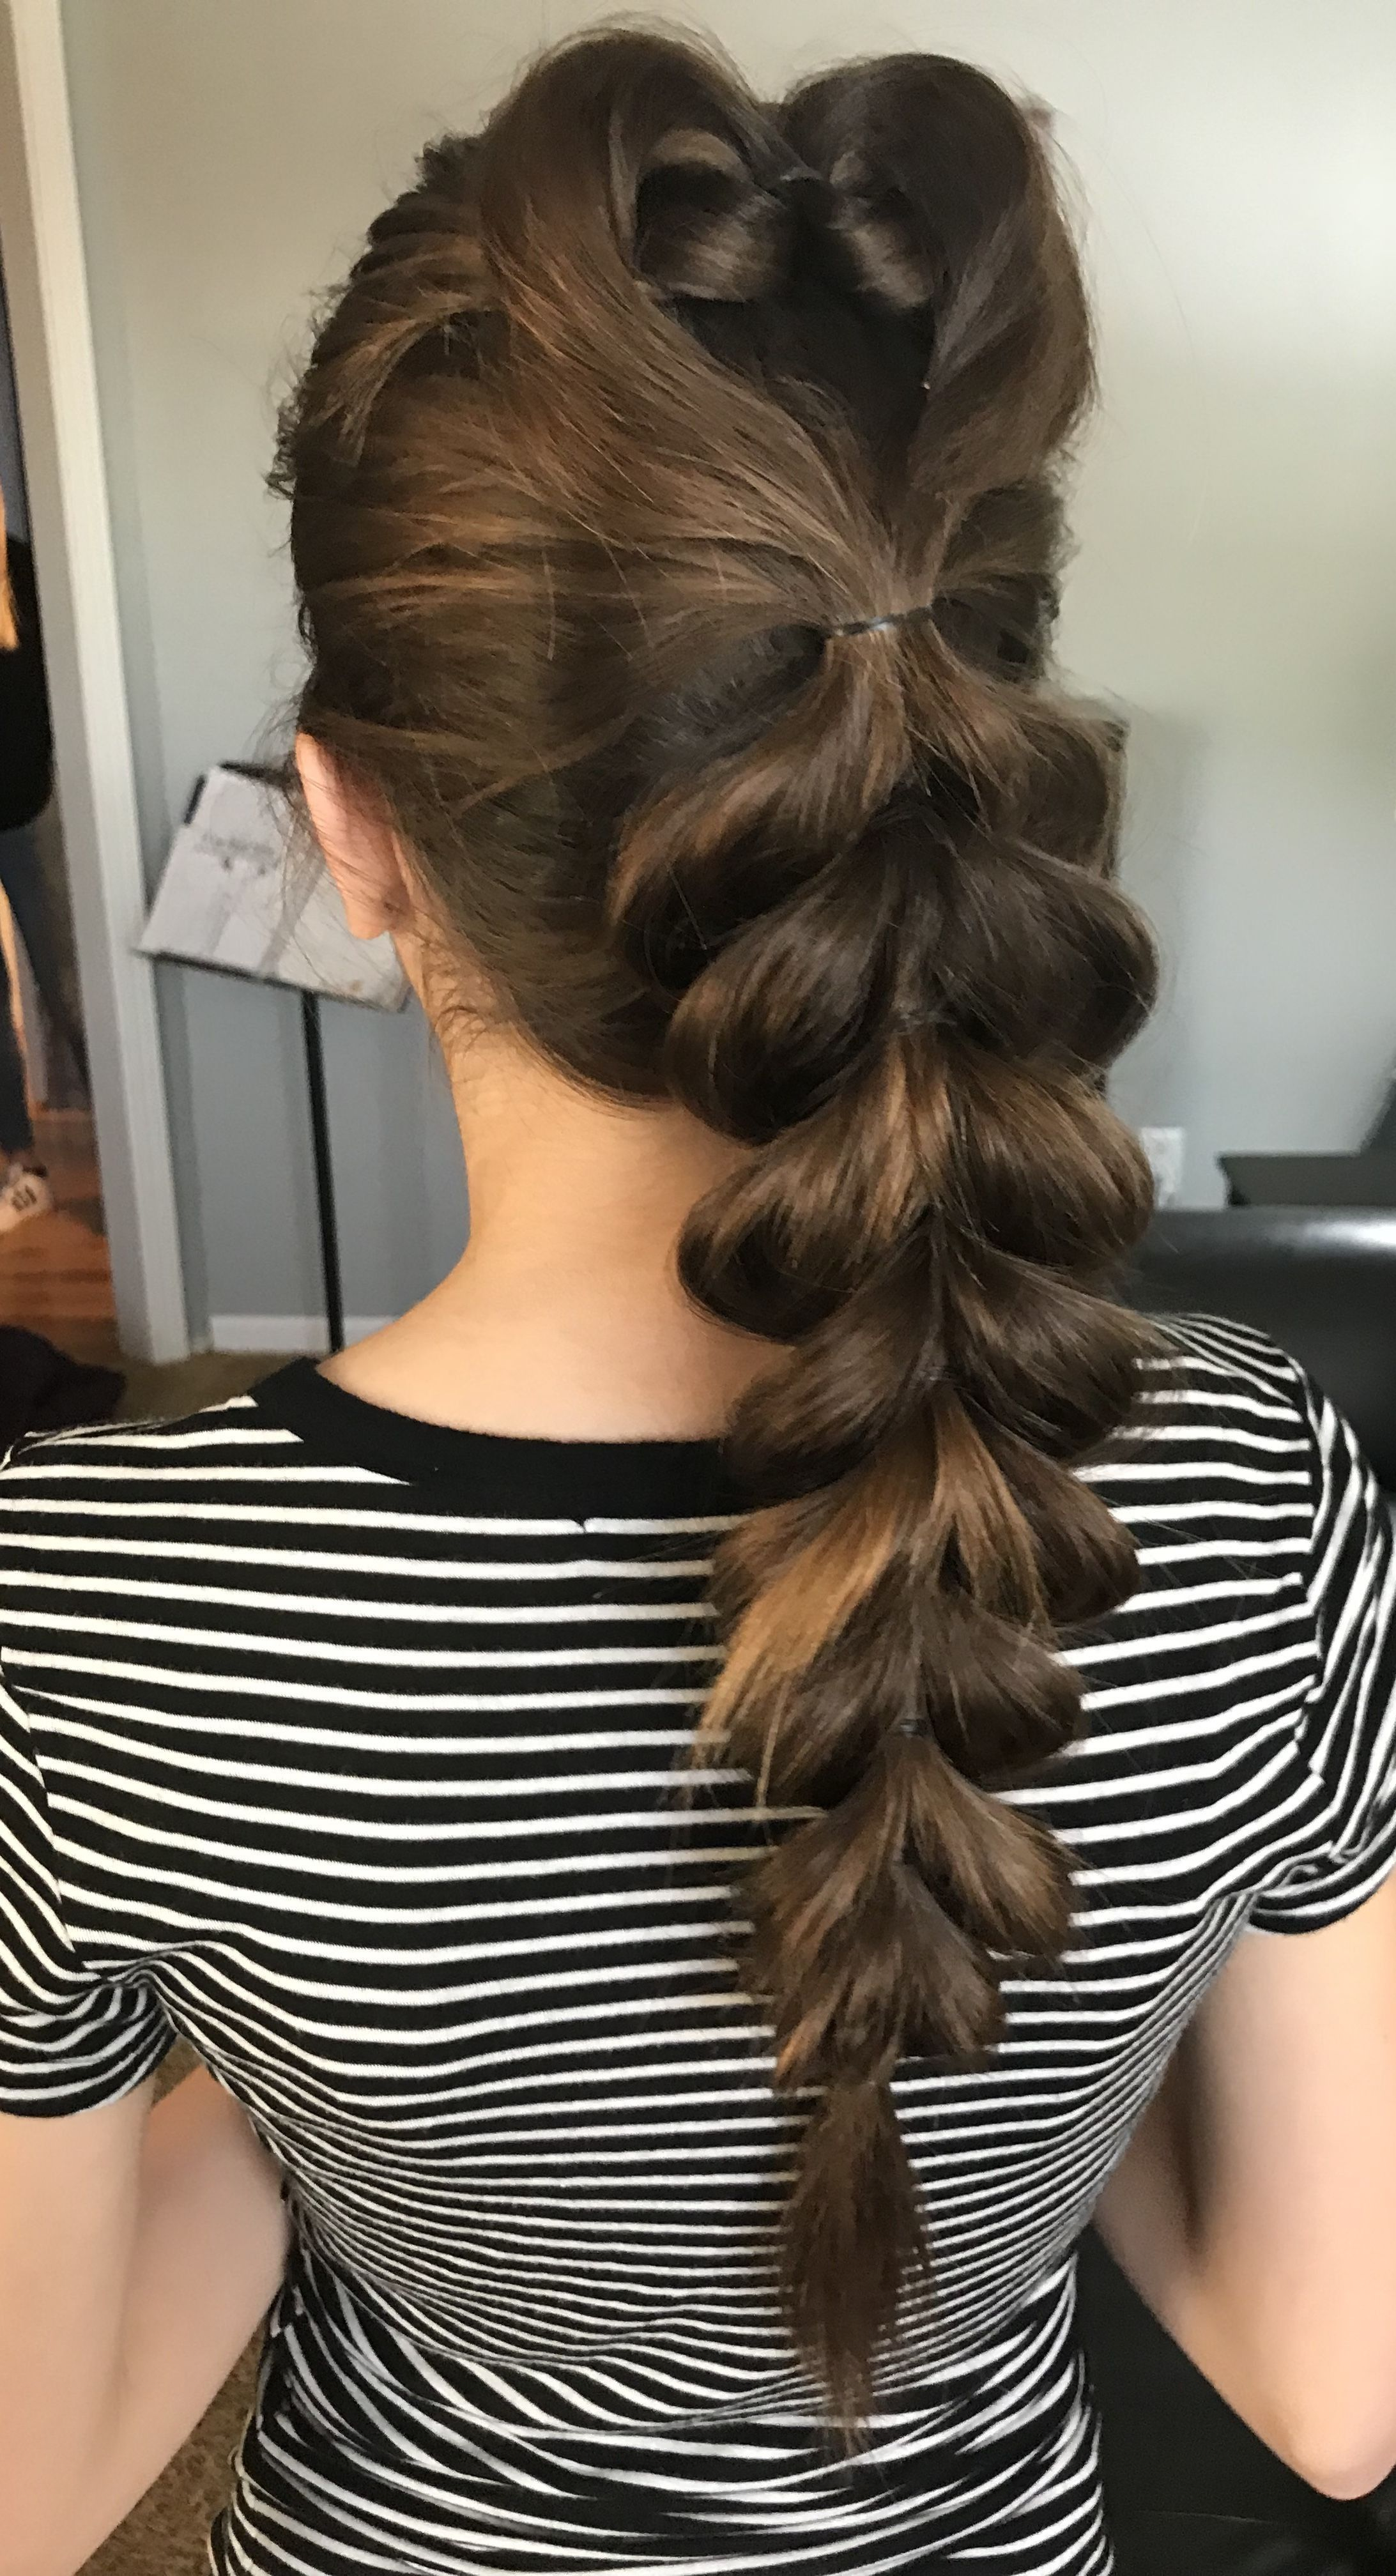 15 Quick Hairstyles Thin To Make A Real Statement Church Hairstyles Hair Styles Quick Hairstyles